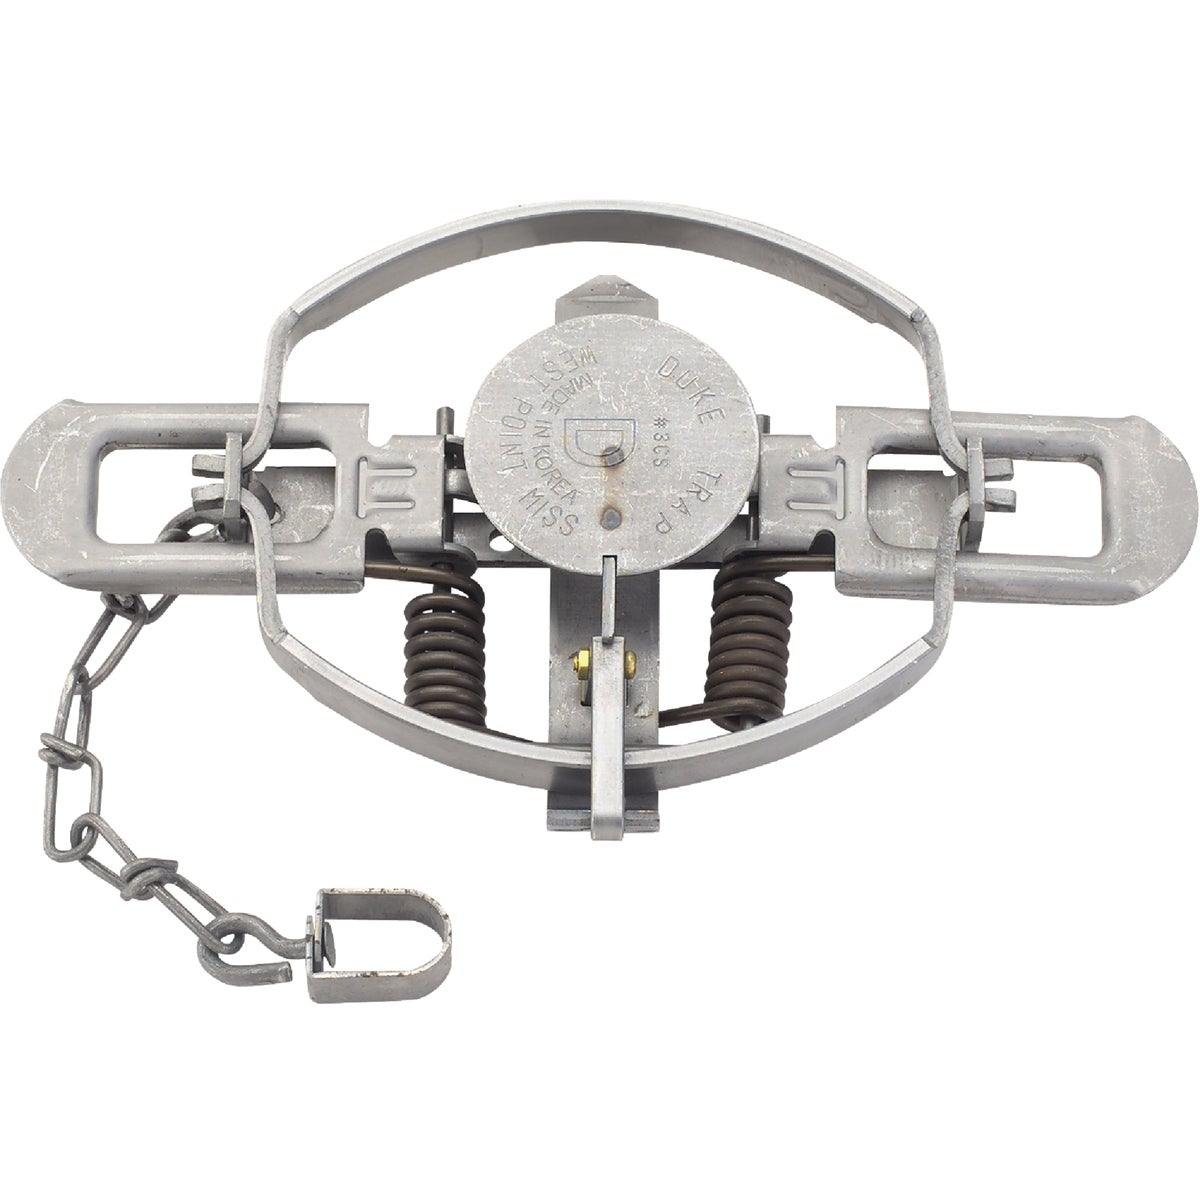 #3 COIL SPRING TRAP - 0500 by Duke Company